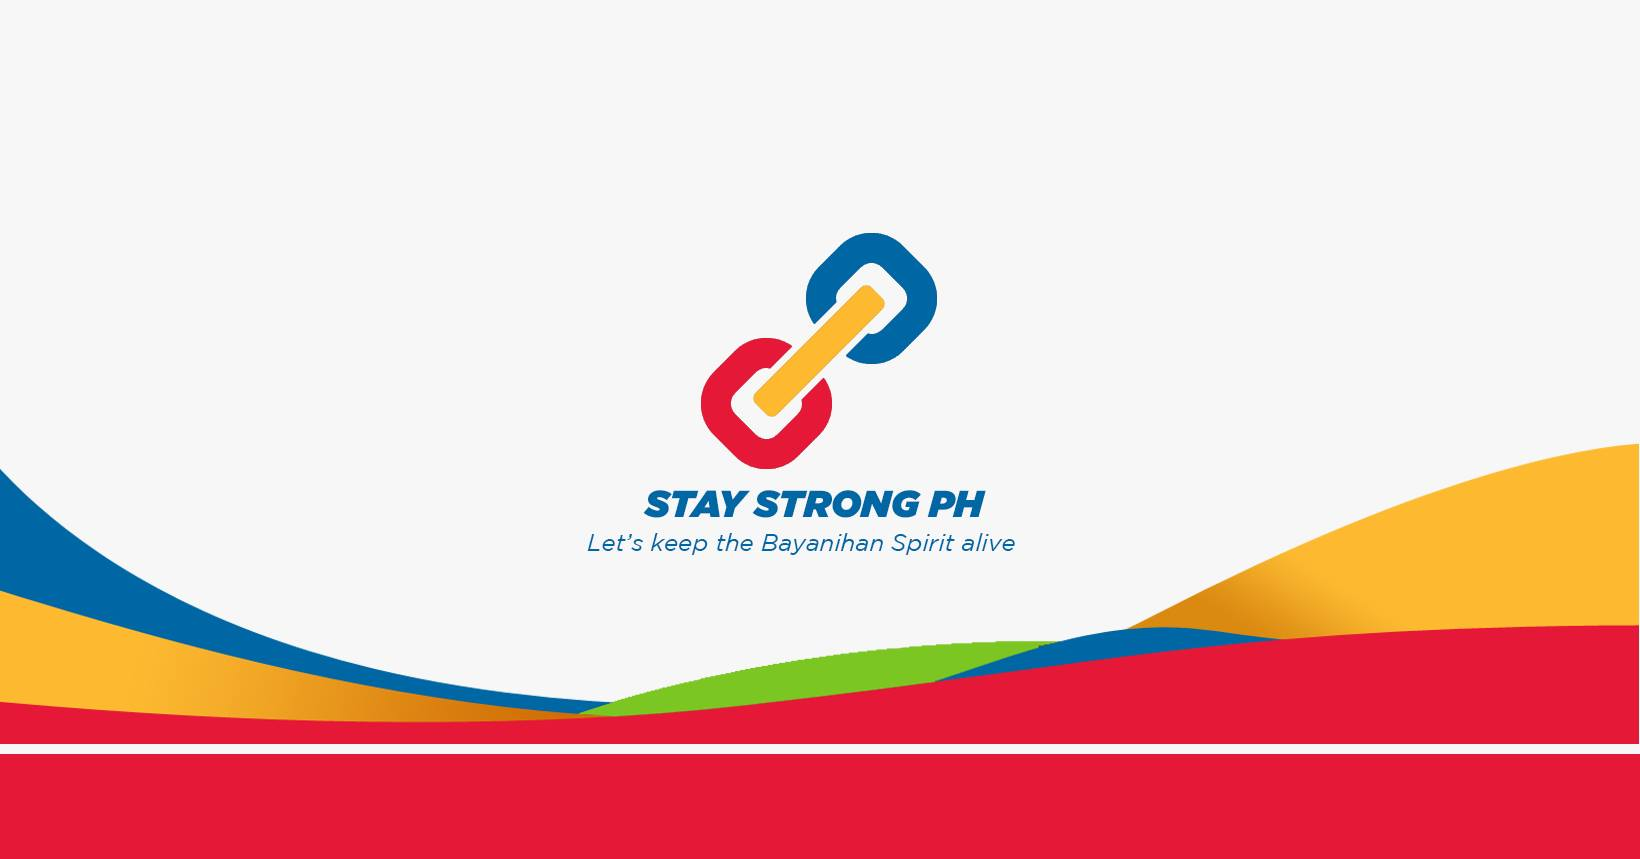 Stay Strong Ph